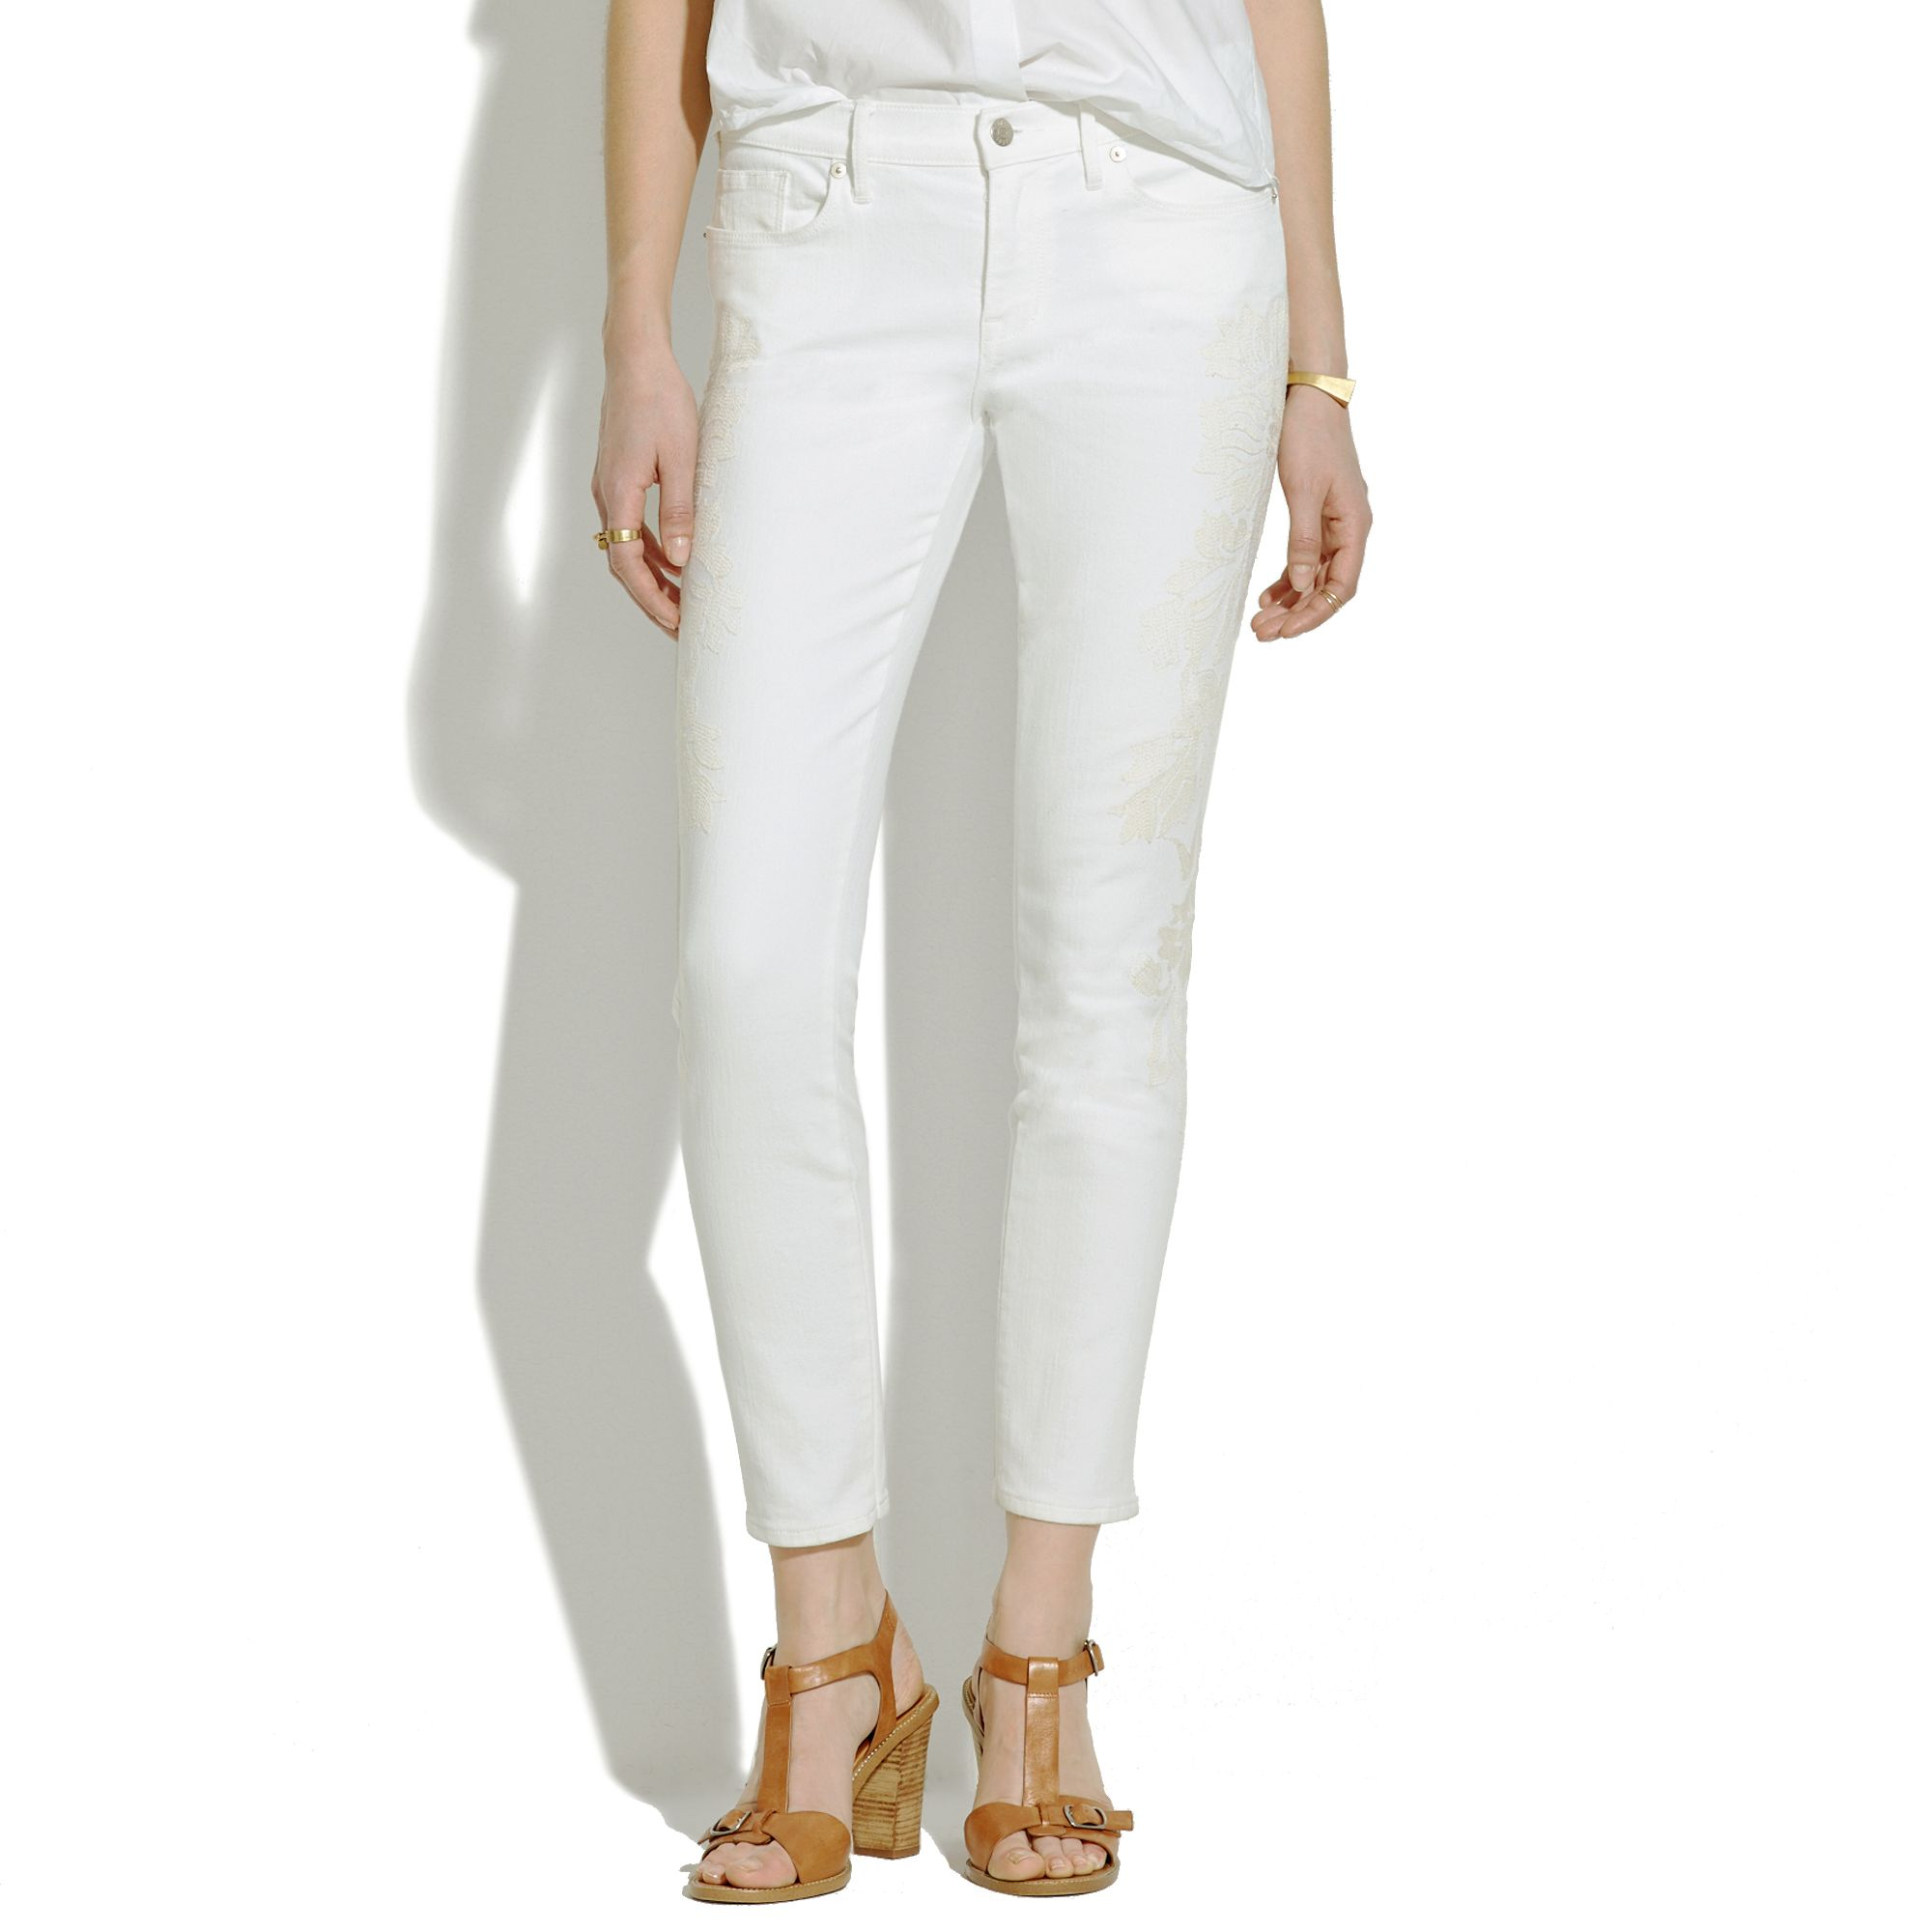 f36c4bd3284 Lyst - Madewell Skinny Skinny Crop Embroidered Jeans in White